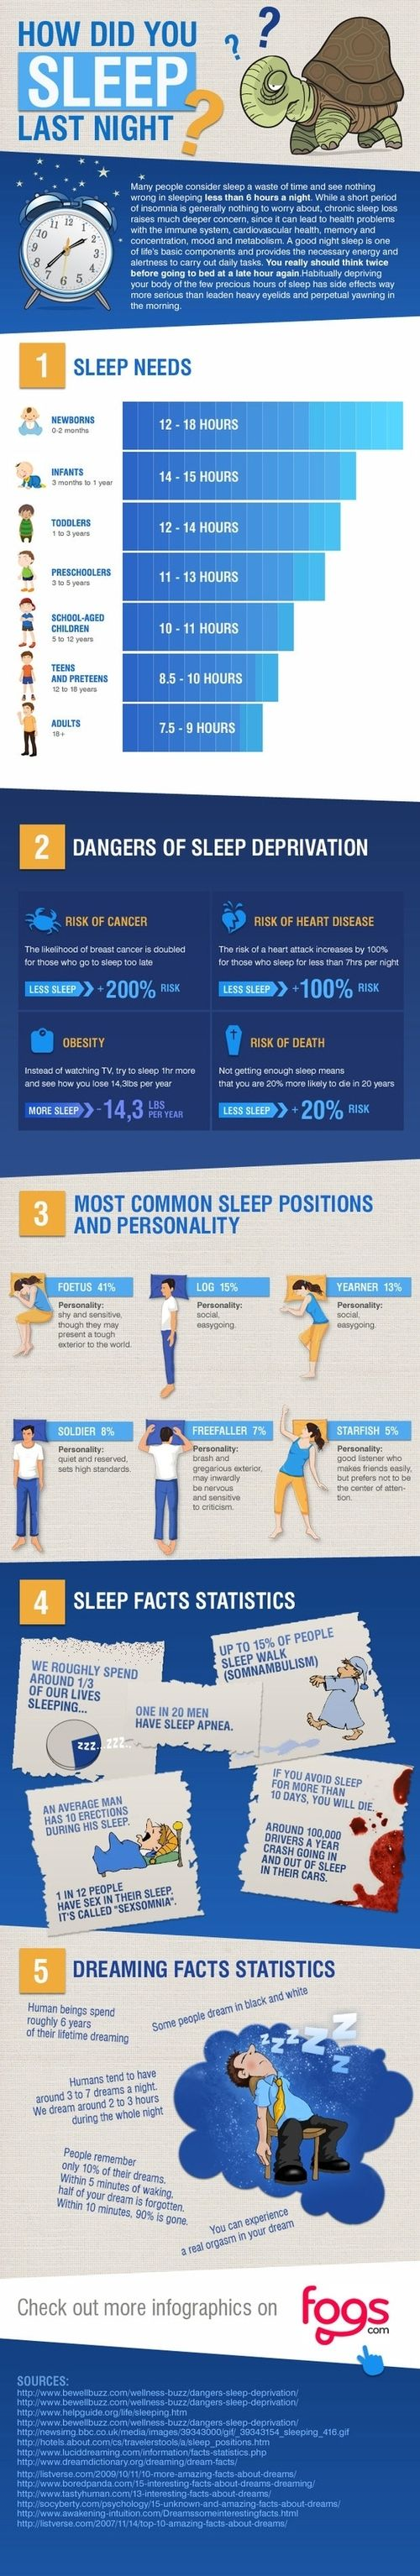 top ideas about sleep deprivation your brain top 25 ideas about sleep deprivation 128205 your brain sleep deprivation and how to sleep